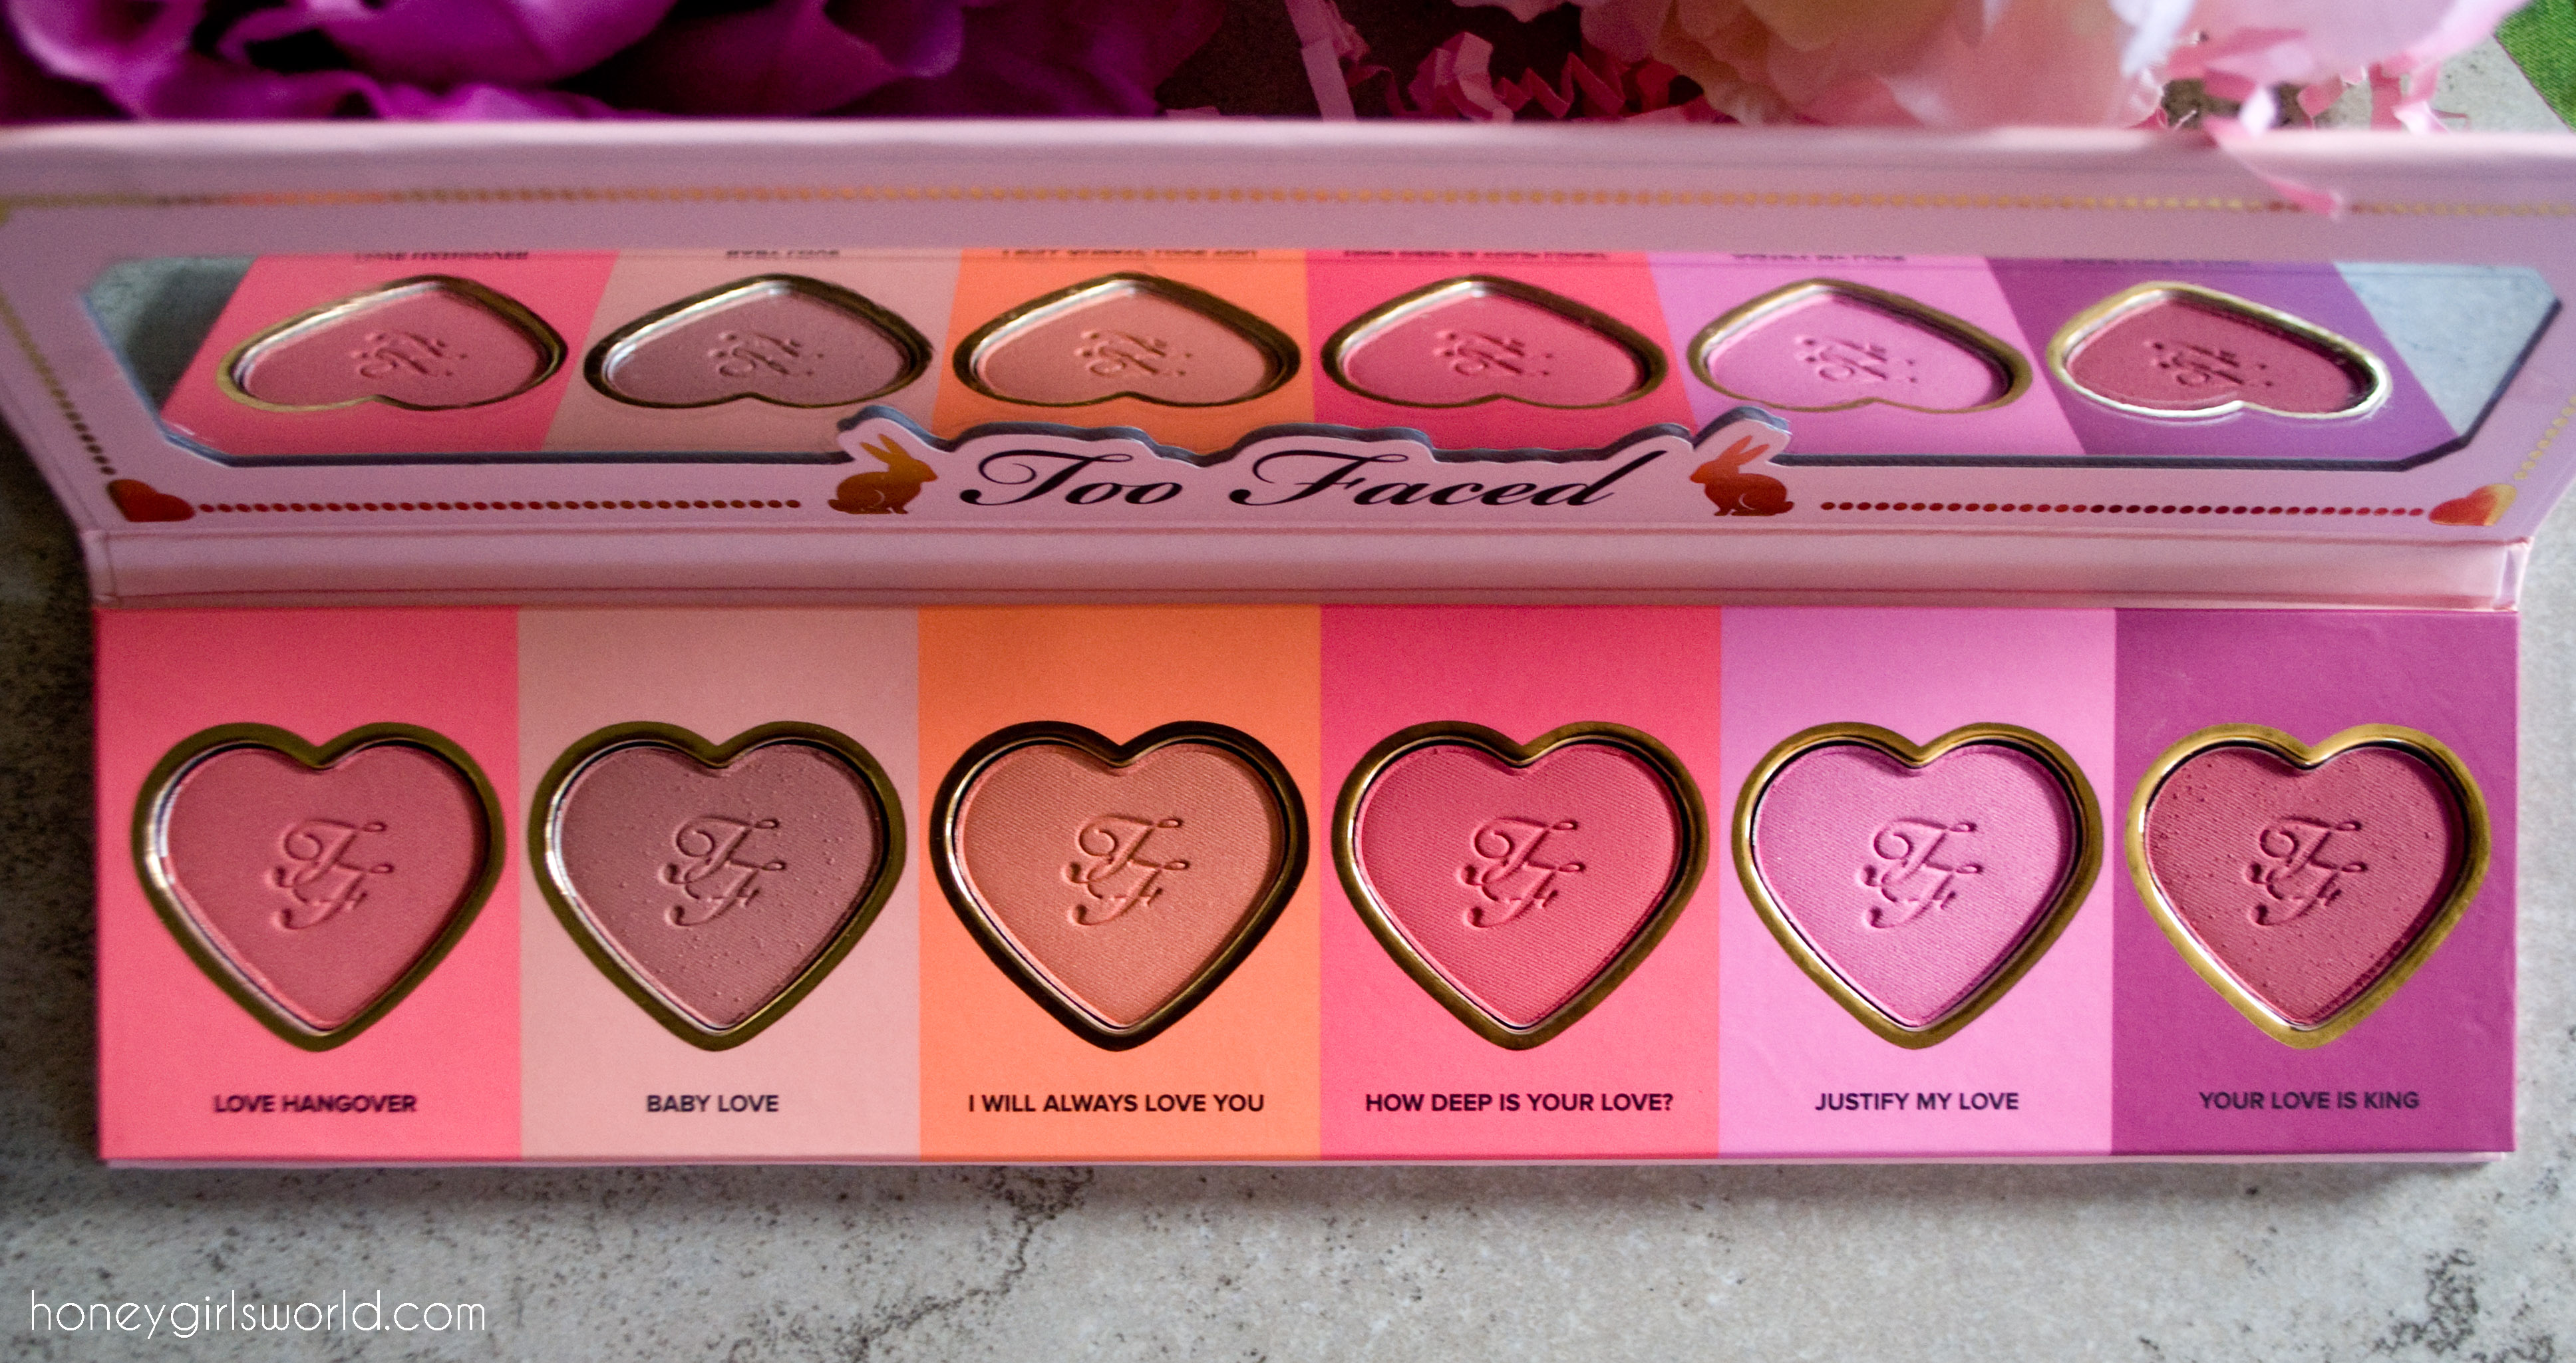 Too Faced Love Flush Blush, Too Faced Love Flush blush wardrobe, blush palette, swatches, review, too faced, cosmetics, makeup, blush, face products, cheeks, product review, beauty,